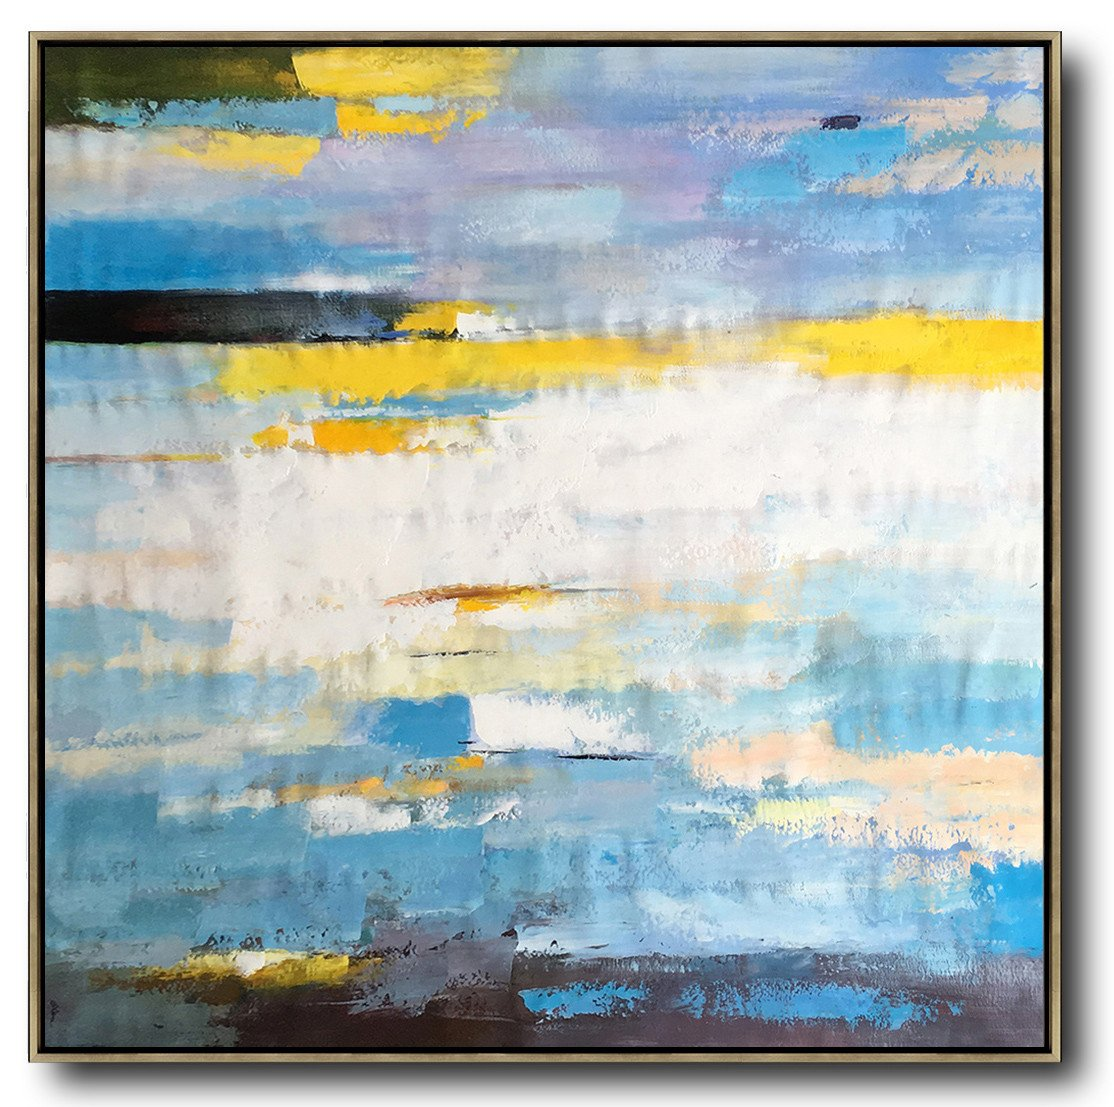 Extra Large Acrylic Painting On Canvas,Oversized Contemporary Art,Large Wall Canvas,White,Blue,Yellow.etc